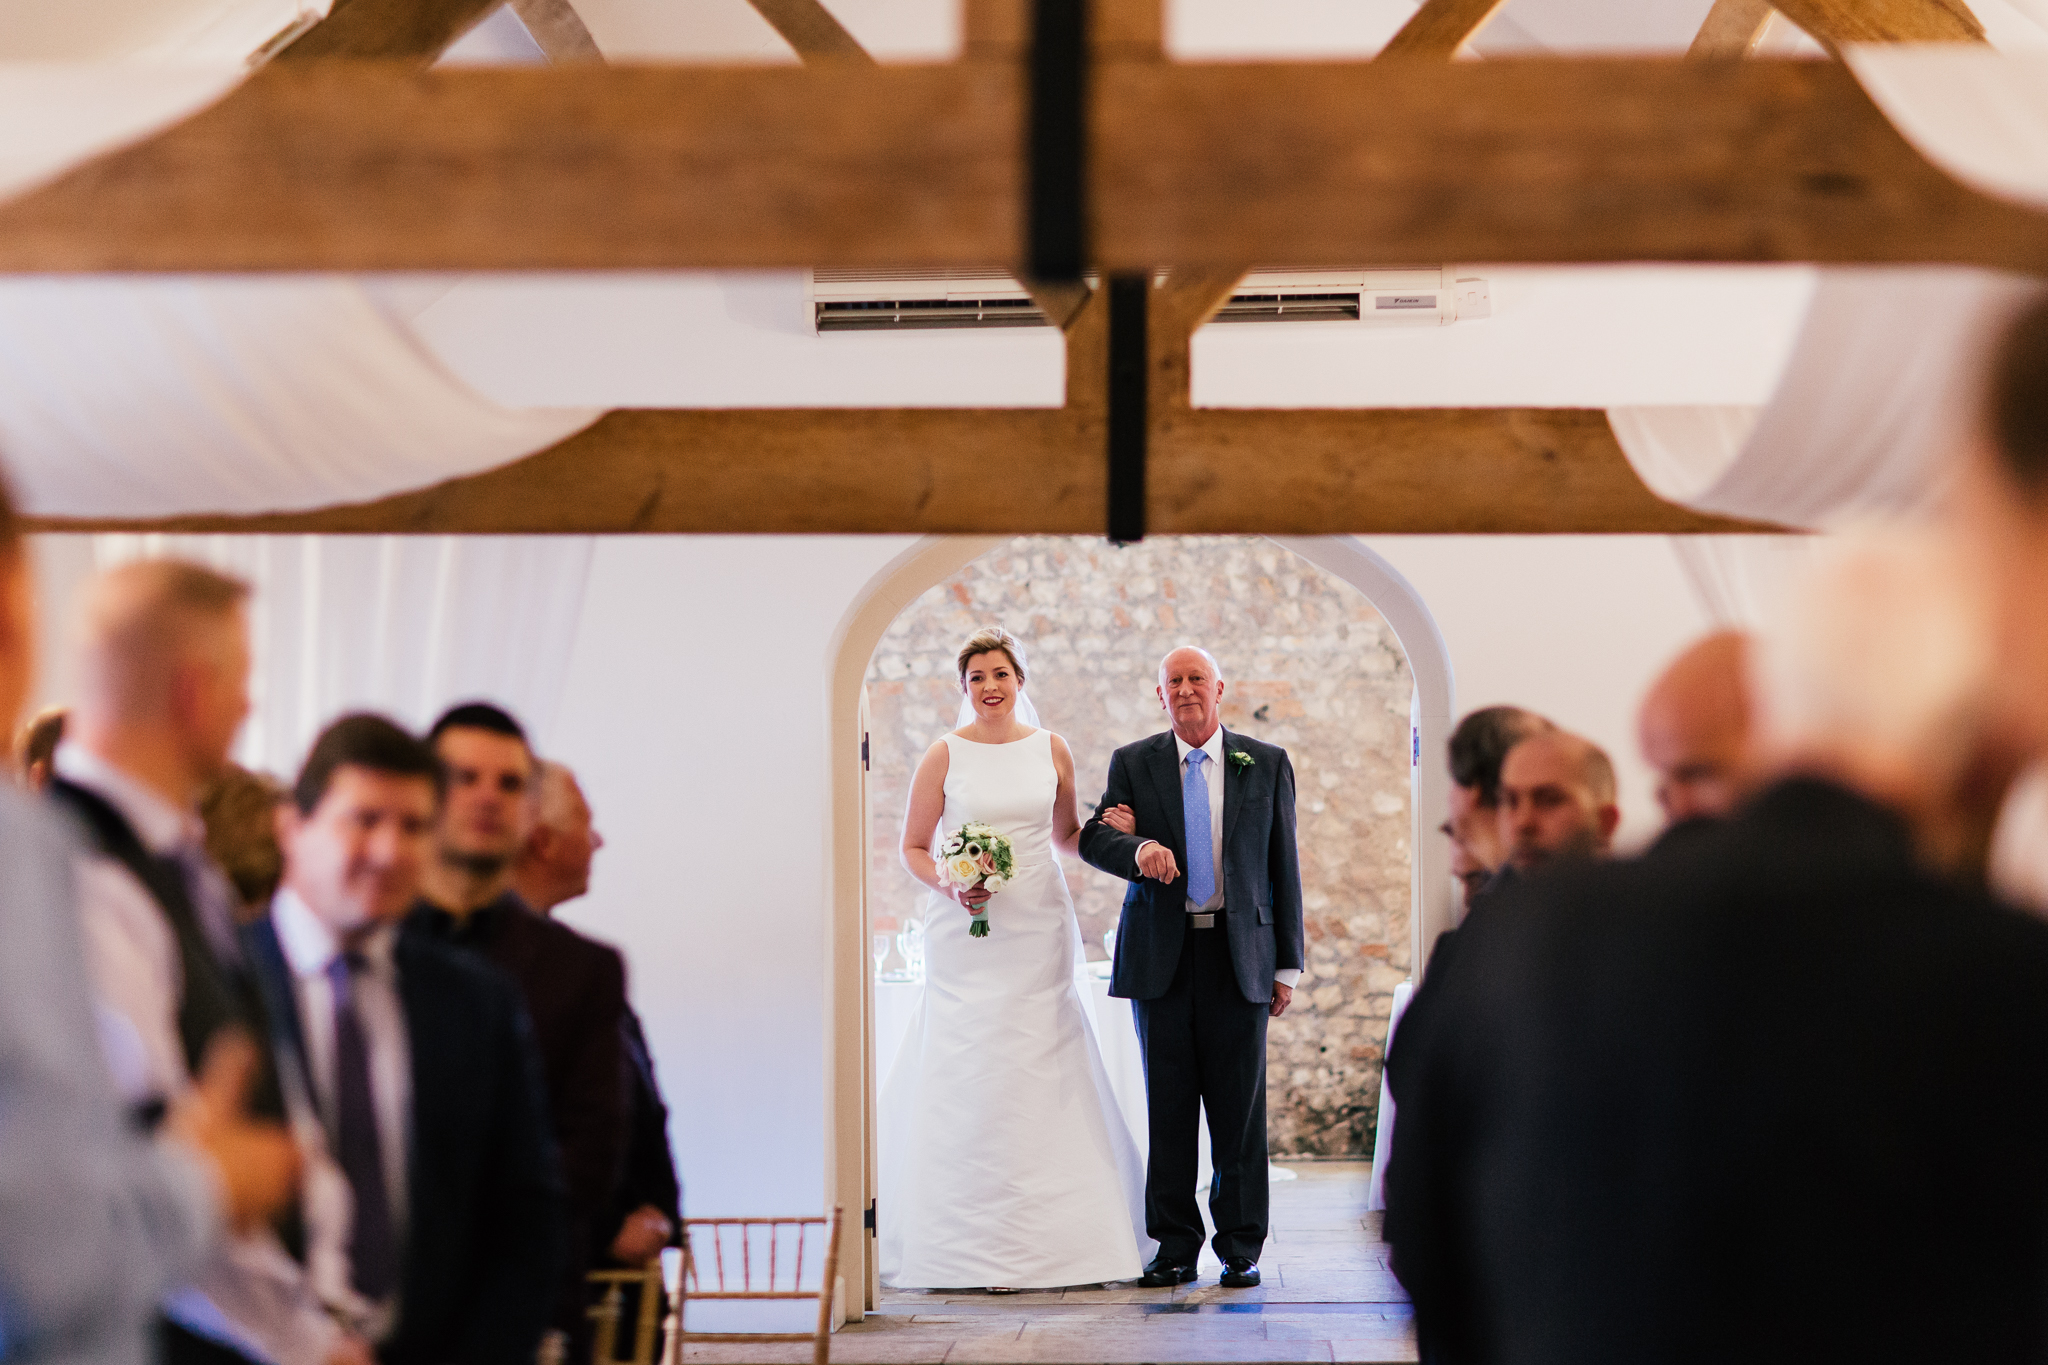 Farbridge Barn Wedding Creative Alternative Photo Chichester Joanna Nicole Photography (26 of 133).jpg